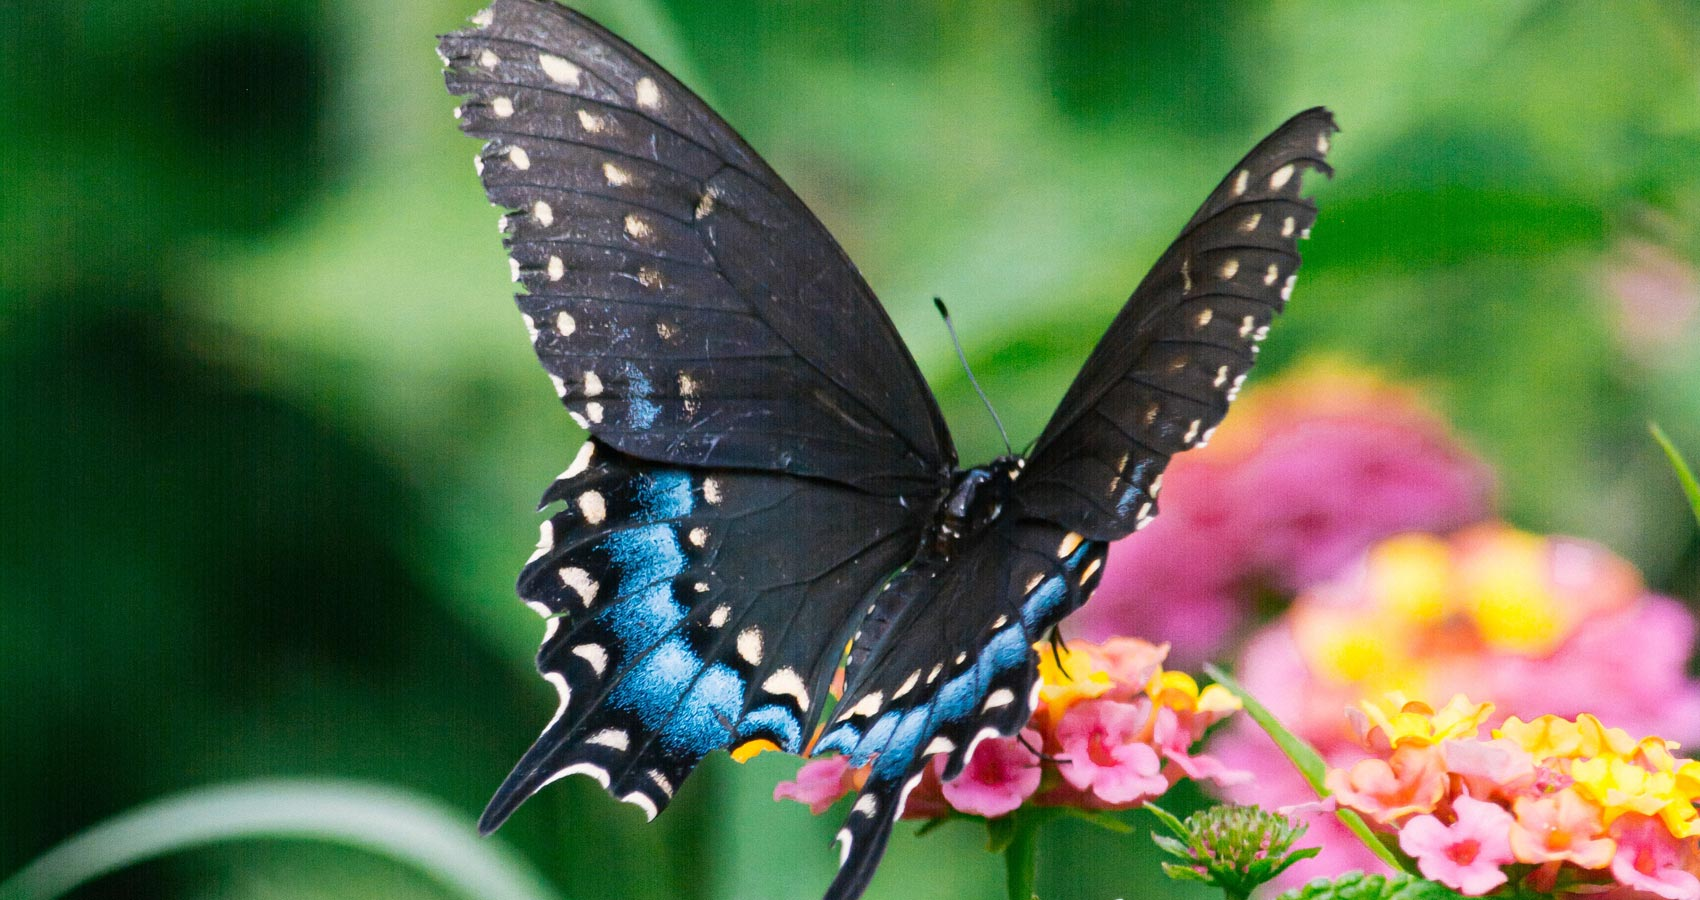 Black Butterfly, poetry by Lorna Jackie Wilson at Spillwords.com